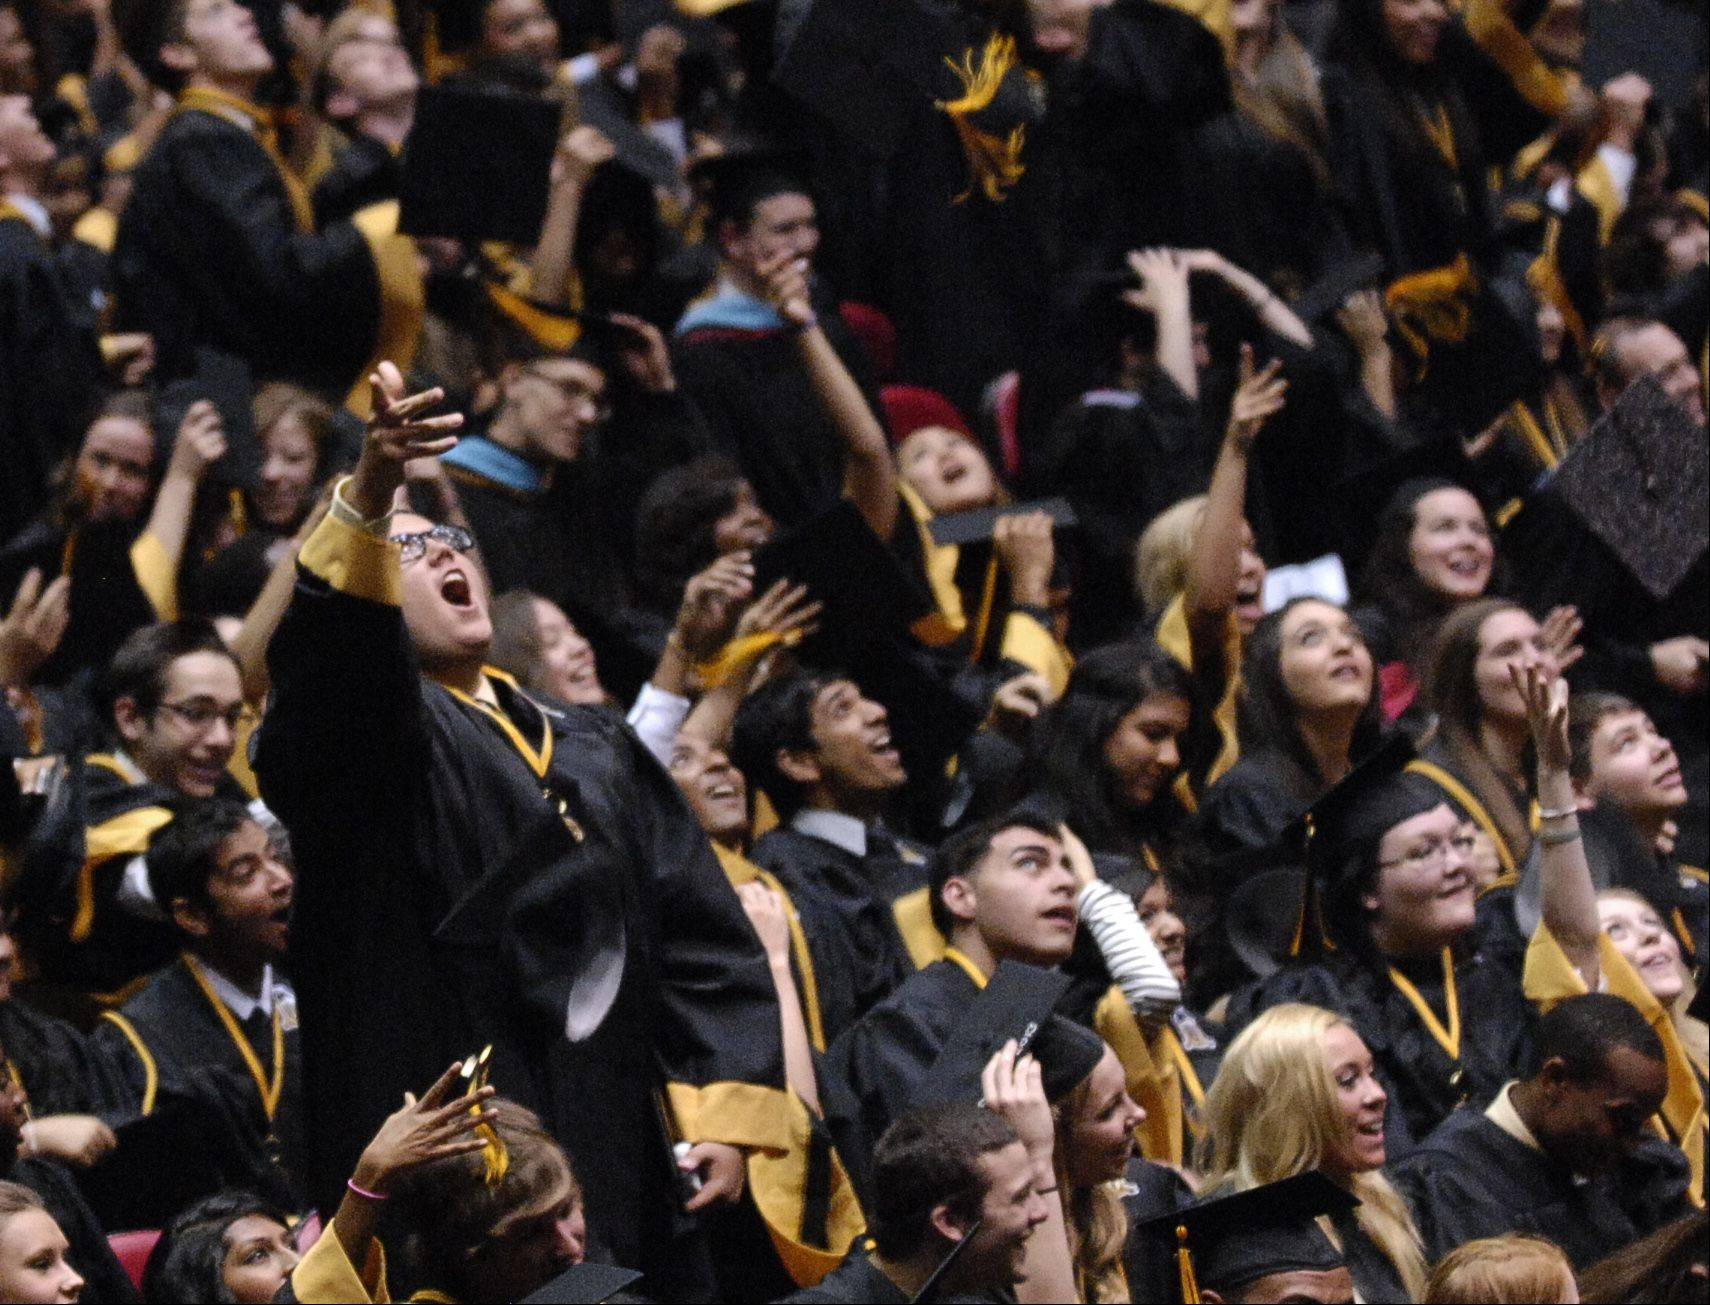 John O'Marrah tosses his cap in the air at the end of the Metea Valley High School graduation on Sunday, May 26 at the NIU Convocation Center in DeKalb.